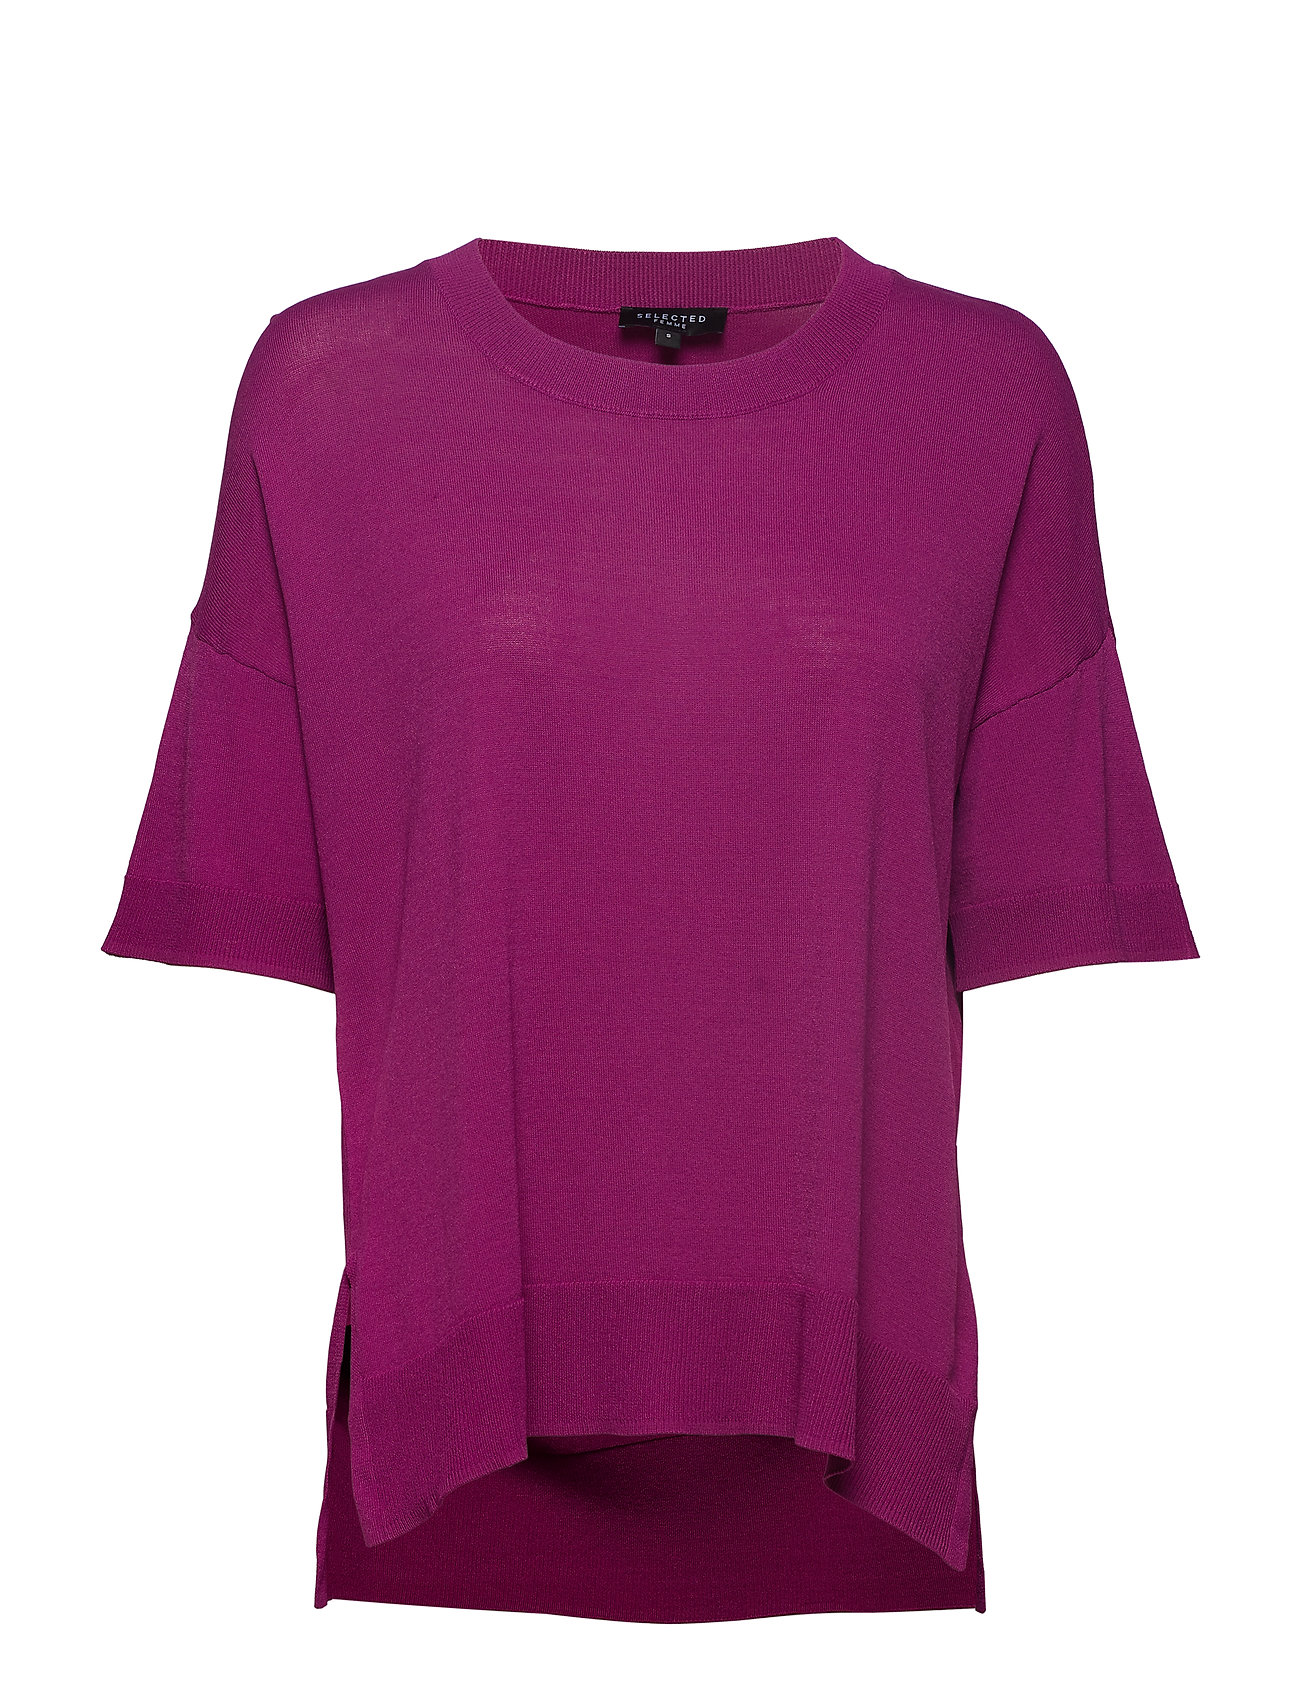 Image of Sfwille Ss Knit Pullover Bluse Kortærmet Lilla SELECTED FEMME (3136917813)